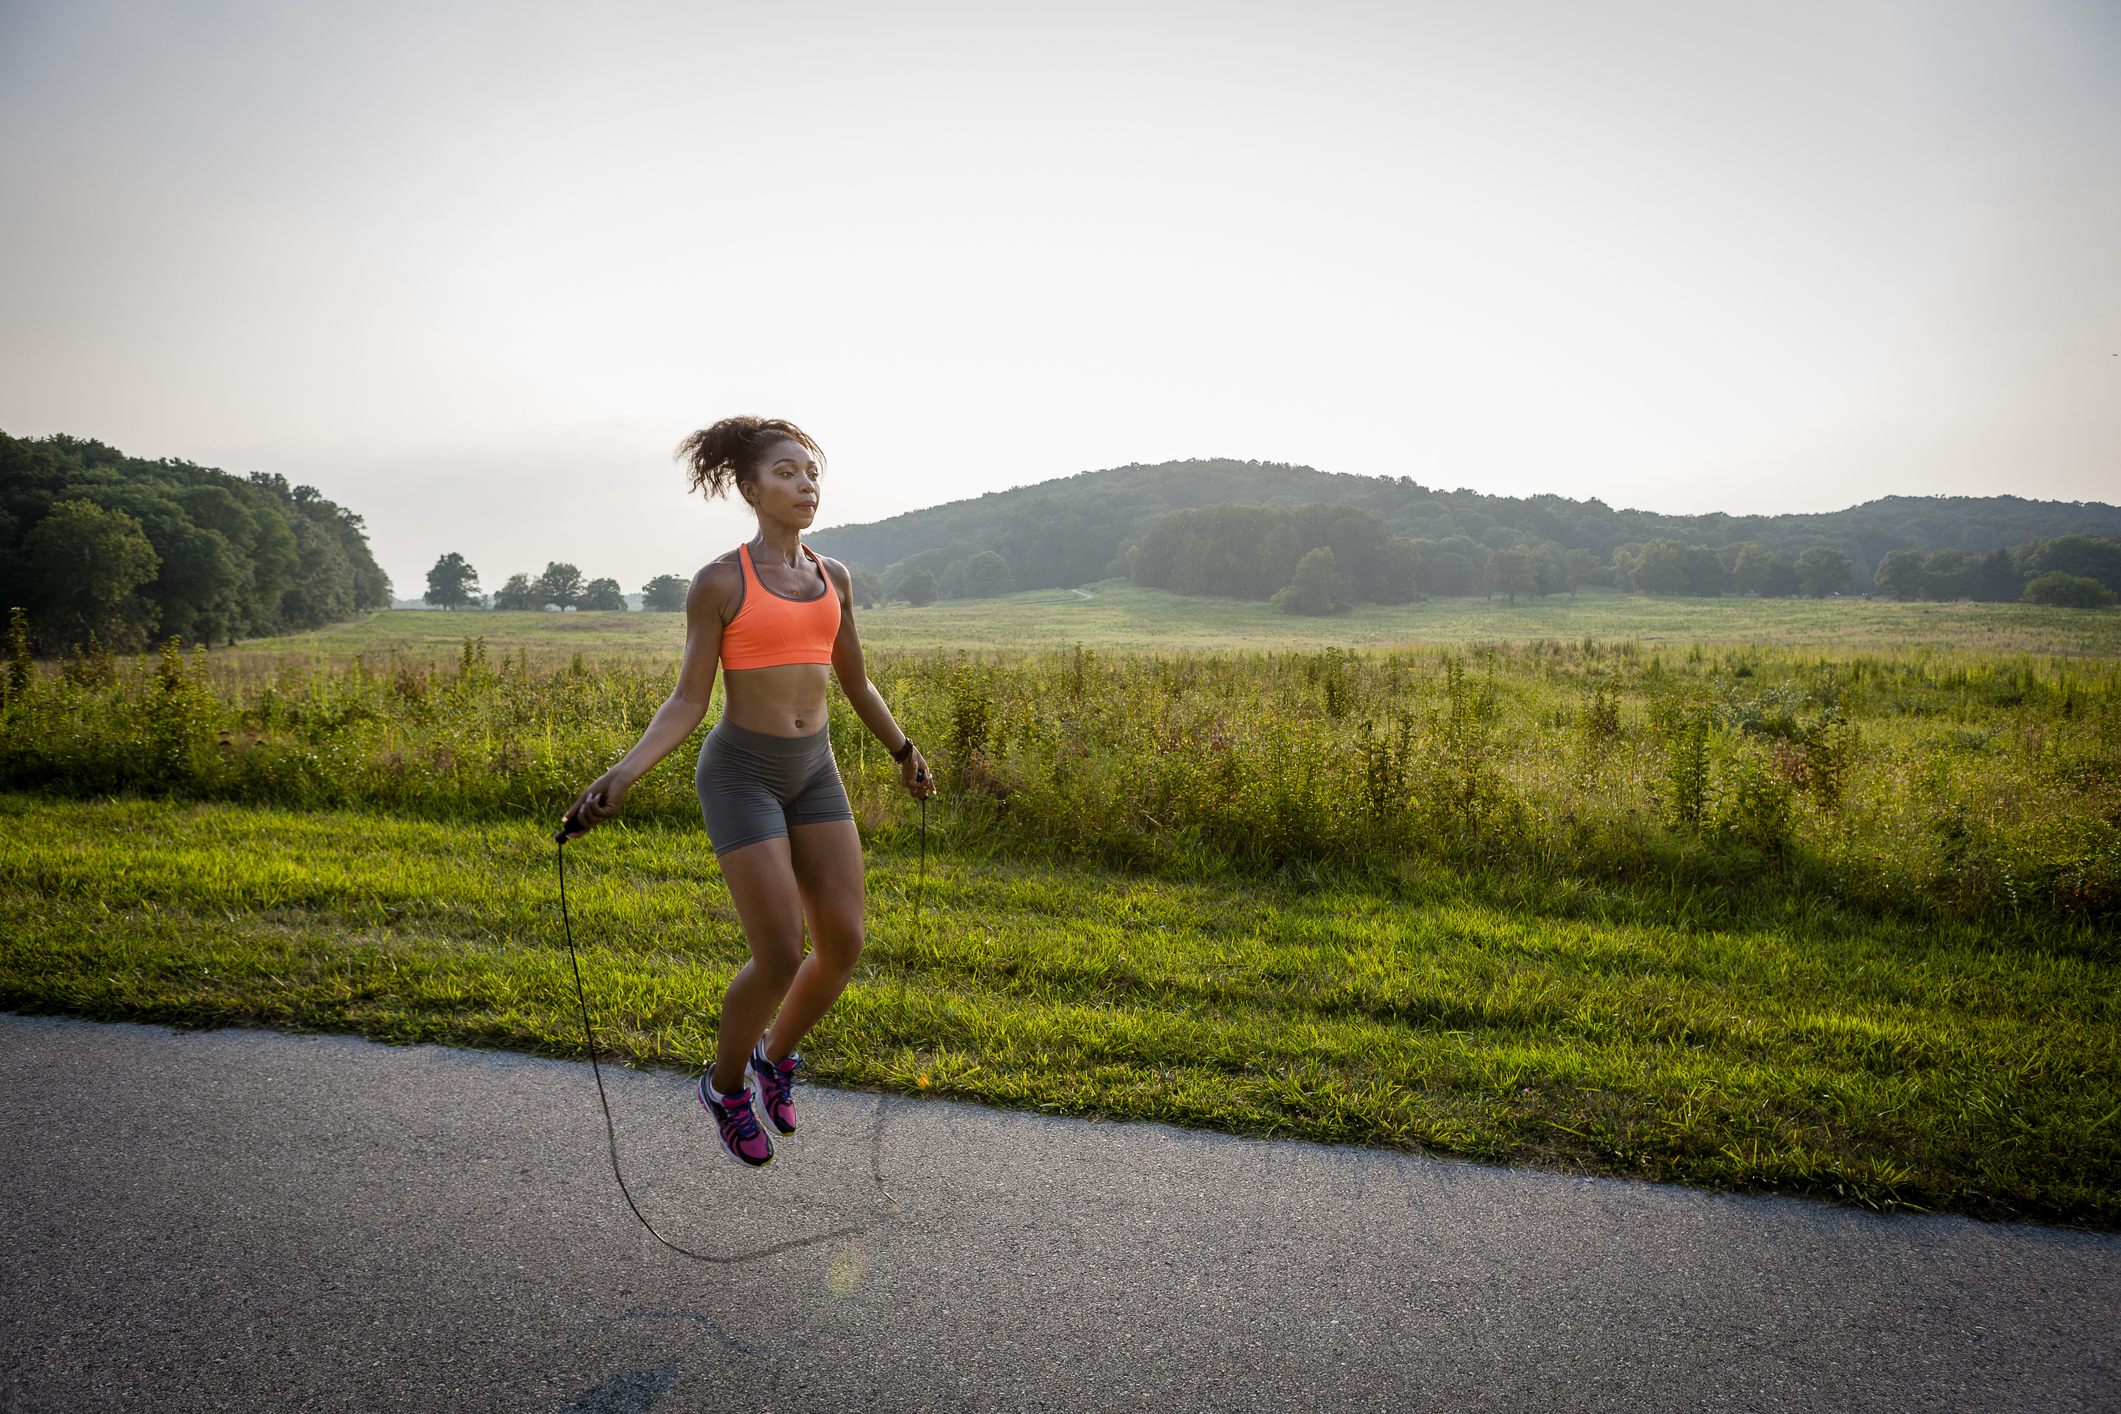 This is why skipping is such amazing cardio